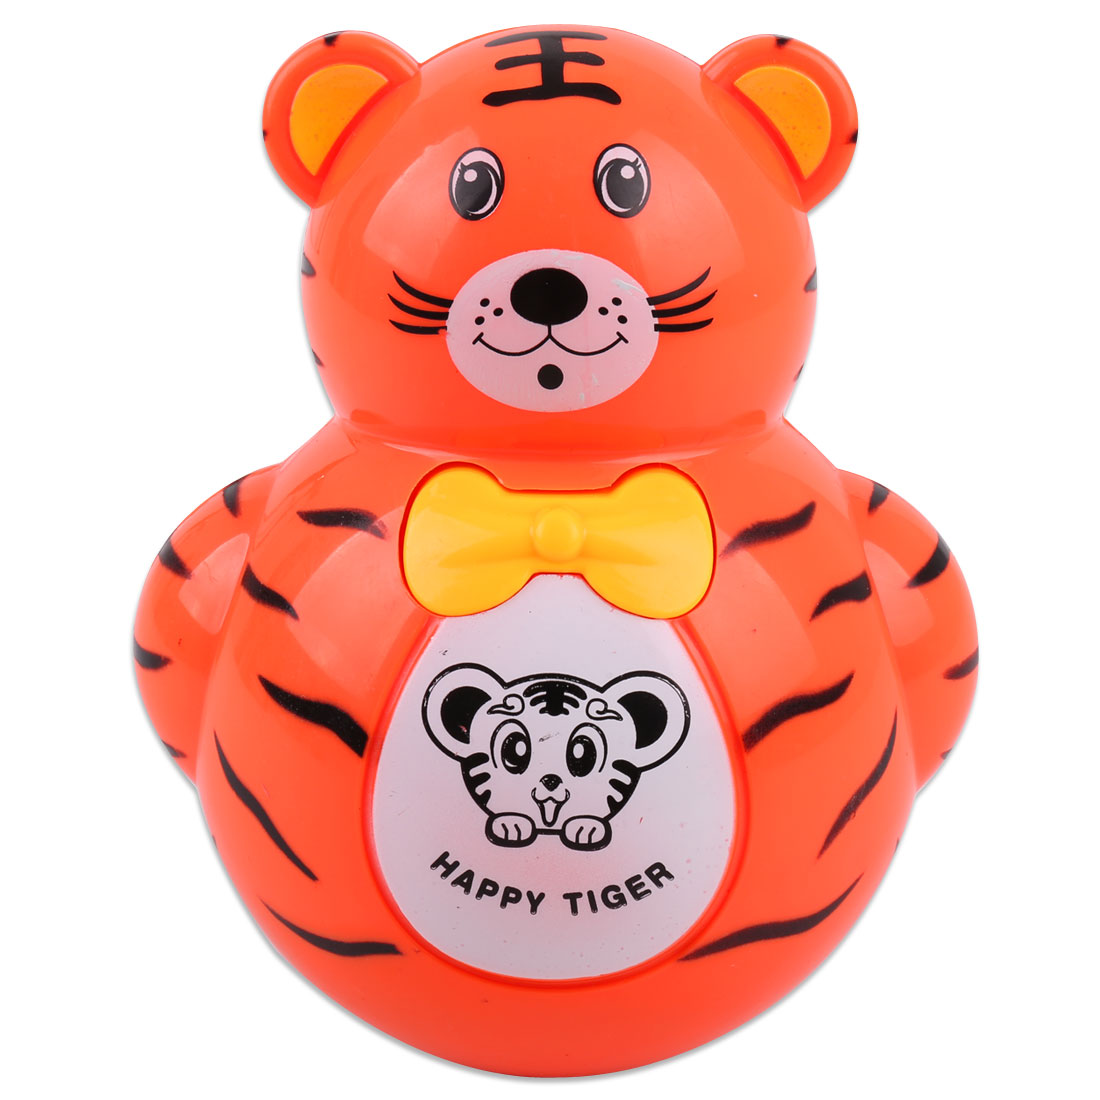 Children Orange Plastic Tiger Red Flashing Light Lamp Tumbler Roly Poly Toy Orange